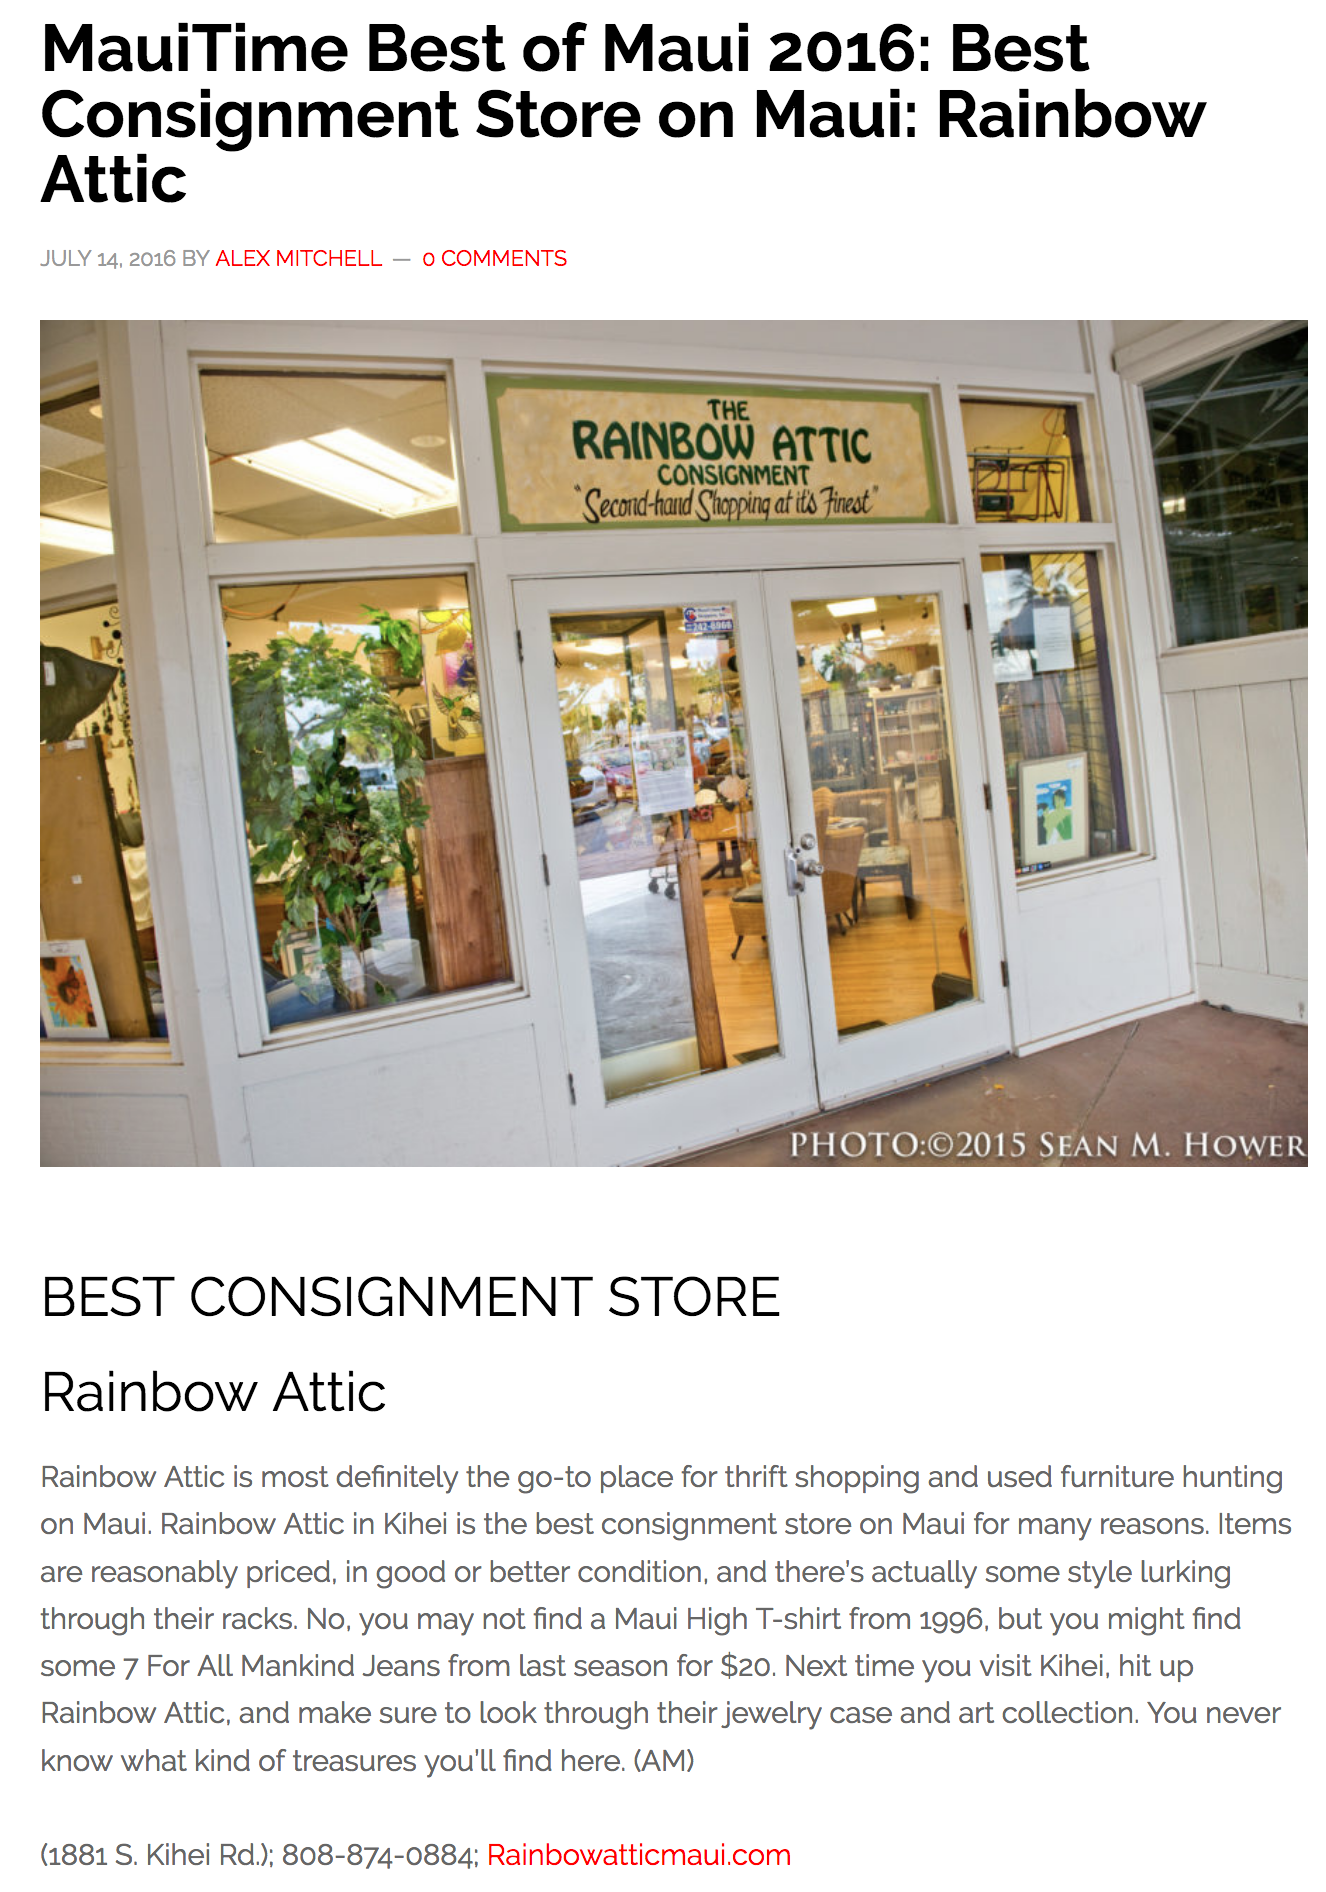 MauiTime Best of Maui 2016: Best Consignment Store on Maui: Rainbow Attic